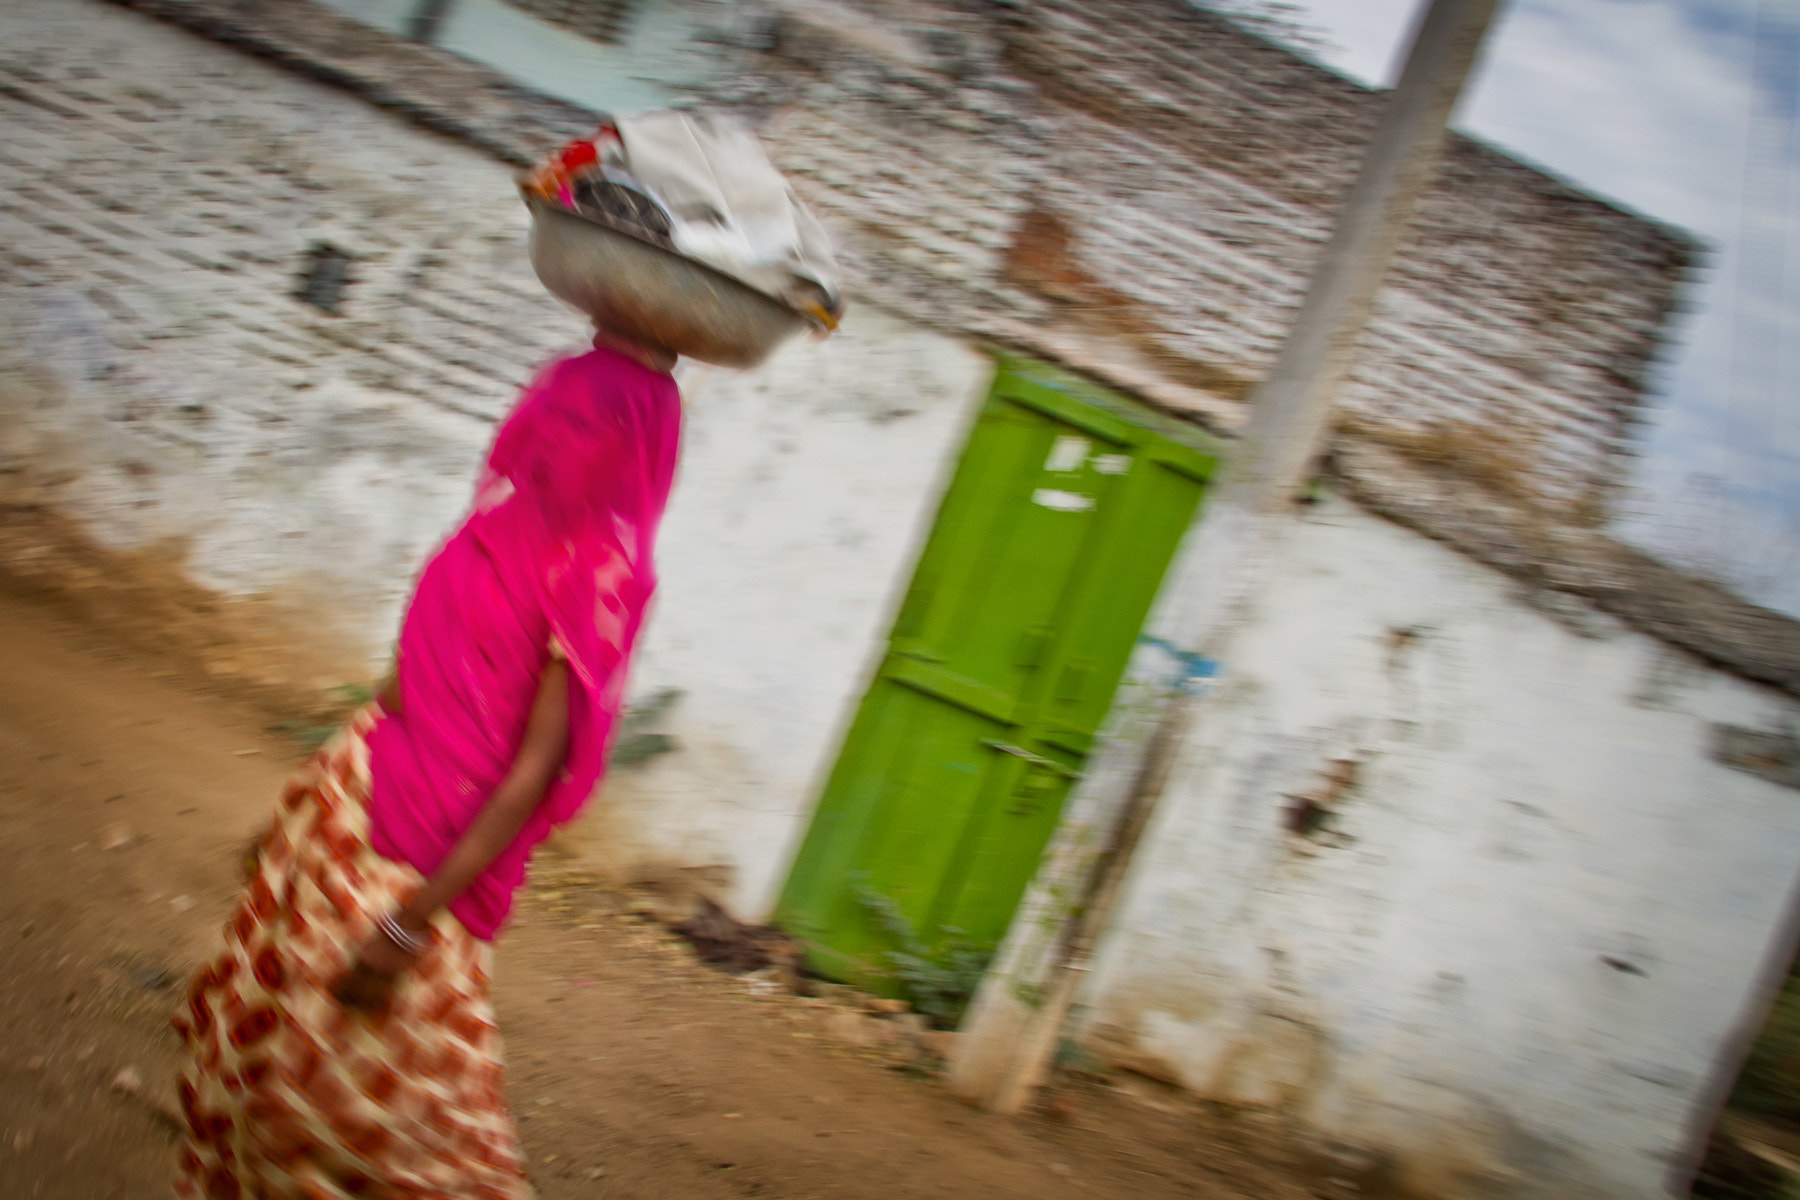 Photograph Rajastani Woman - India in Motion - Rural India - India by Sandy Gennrich on 500px